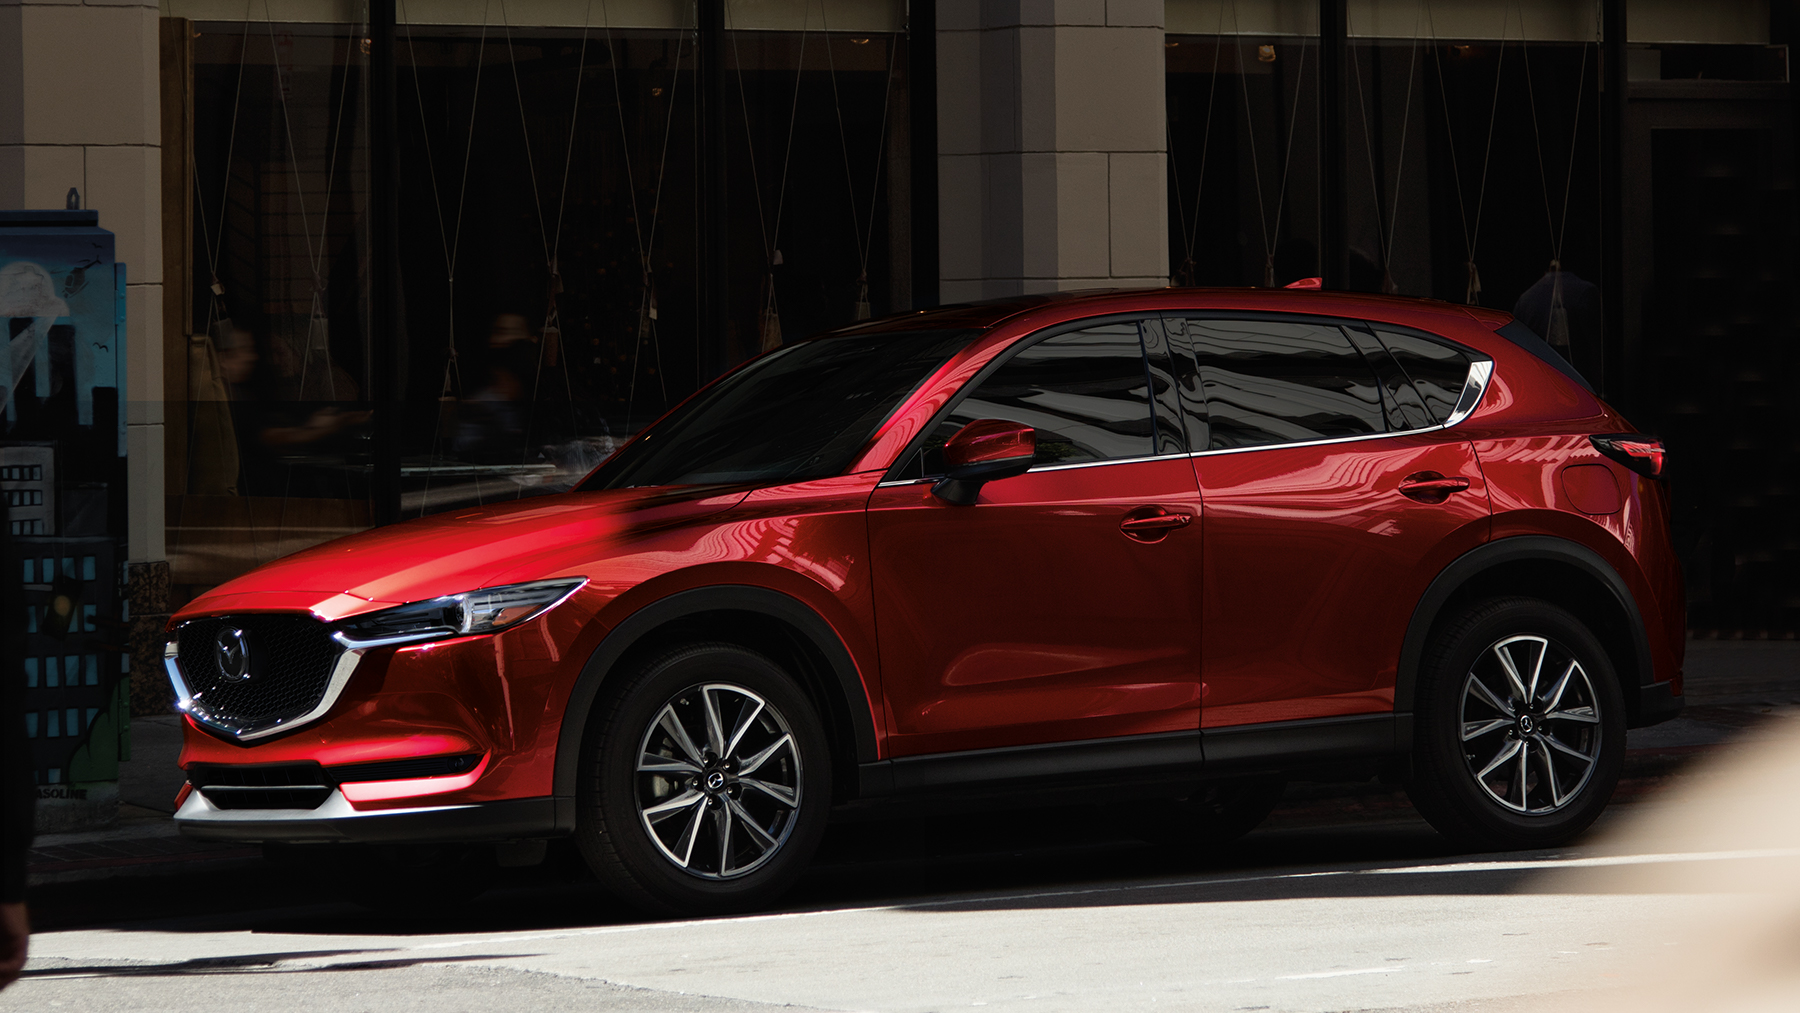 2018 mazda cx 5 crossover suv fuel efficient suv mazda usa. Black Bedroom Furniture Sets. Home Design Ideas